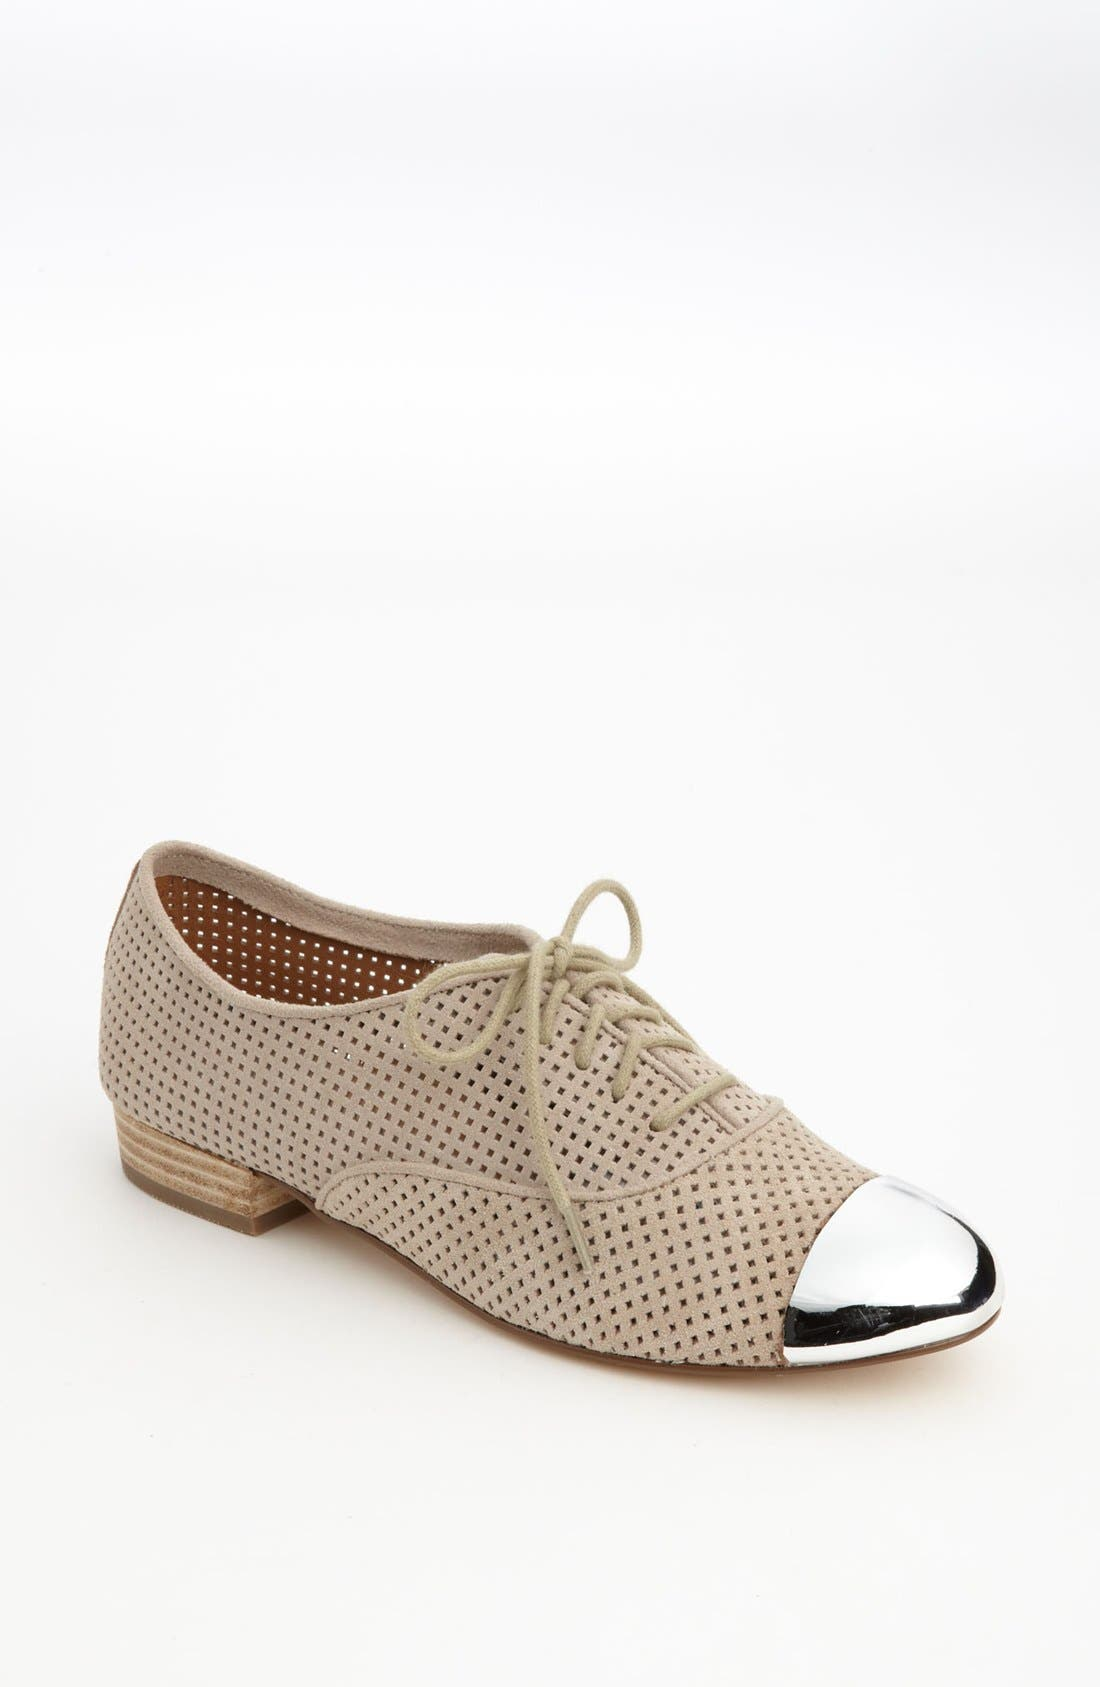 Alternate Image 1 Selected - DV by Dolce Vita 'Flippa' Flat (Nordstrom Exclusive)